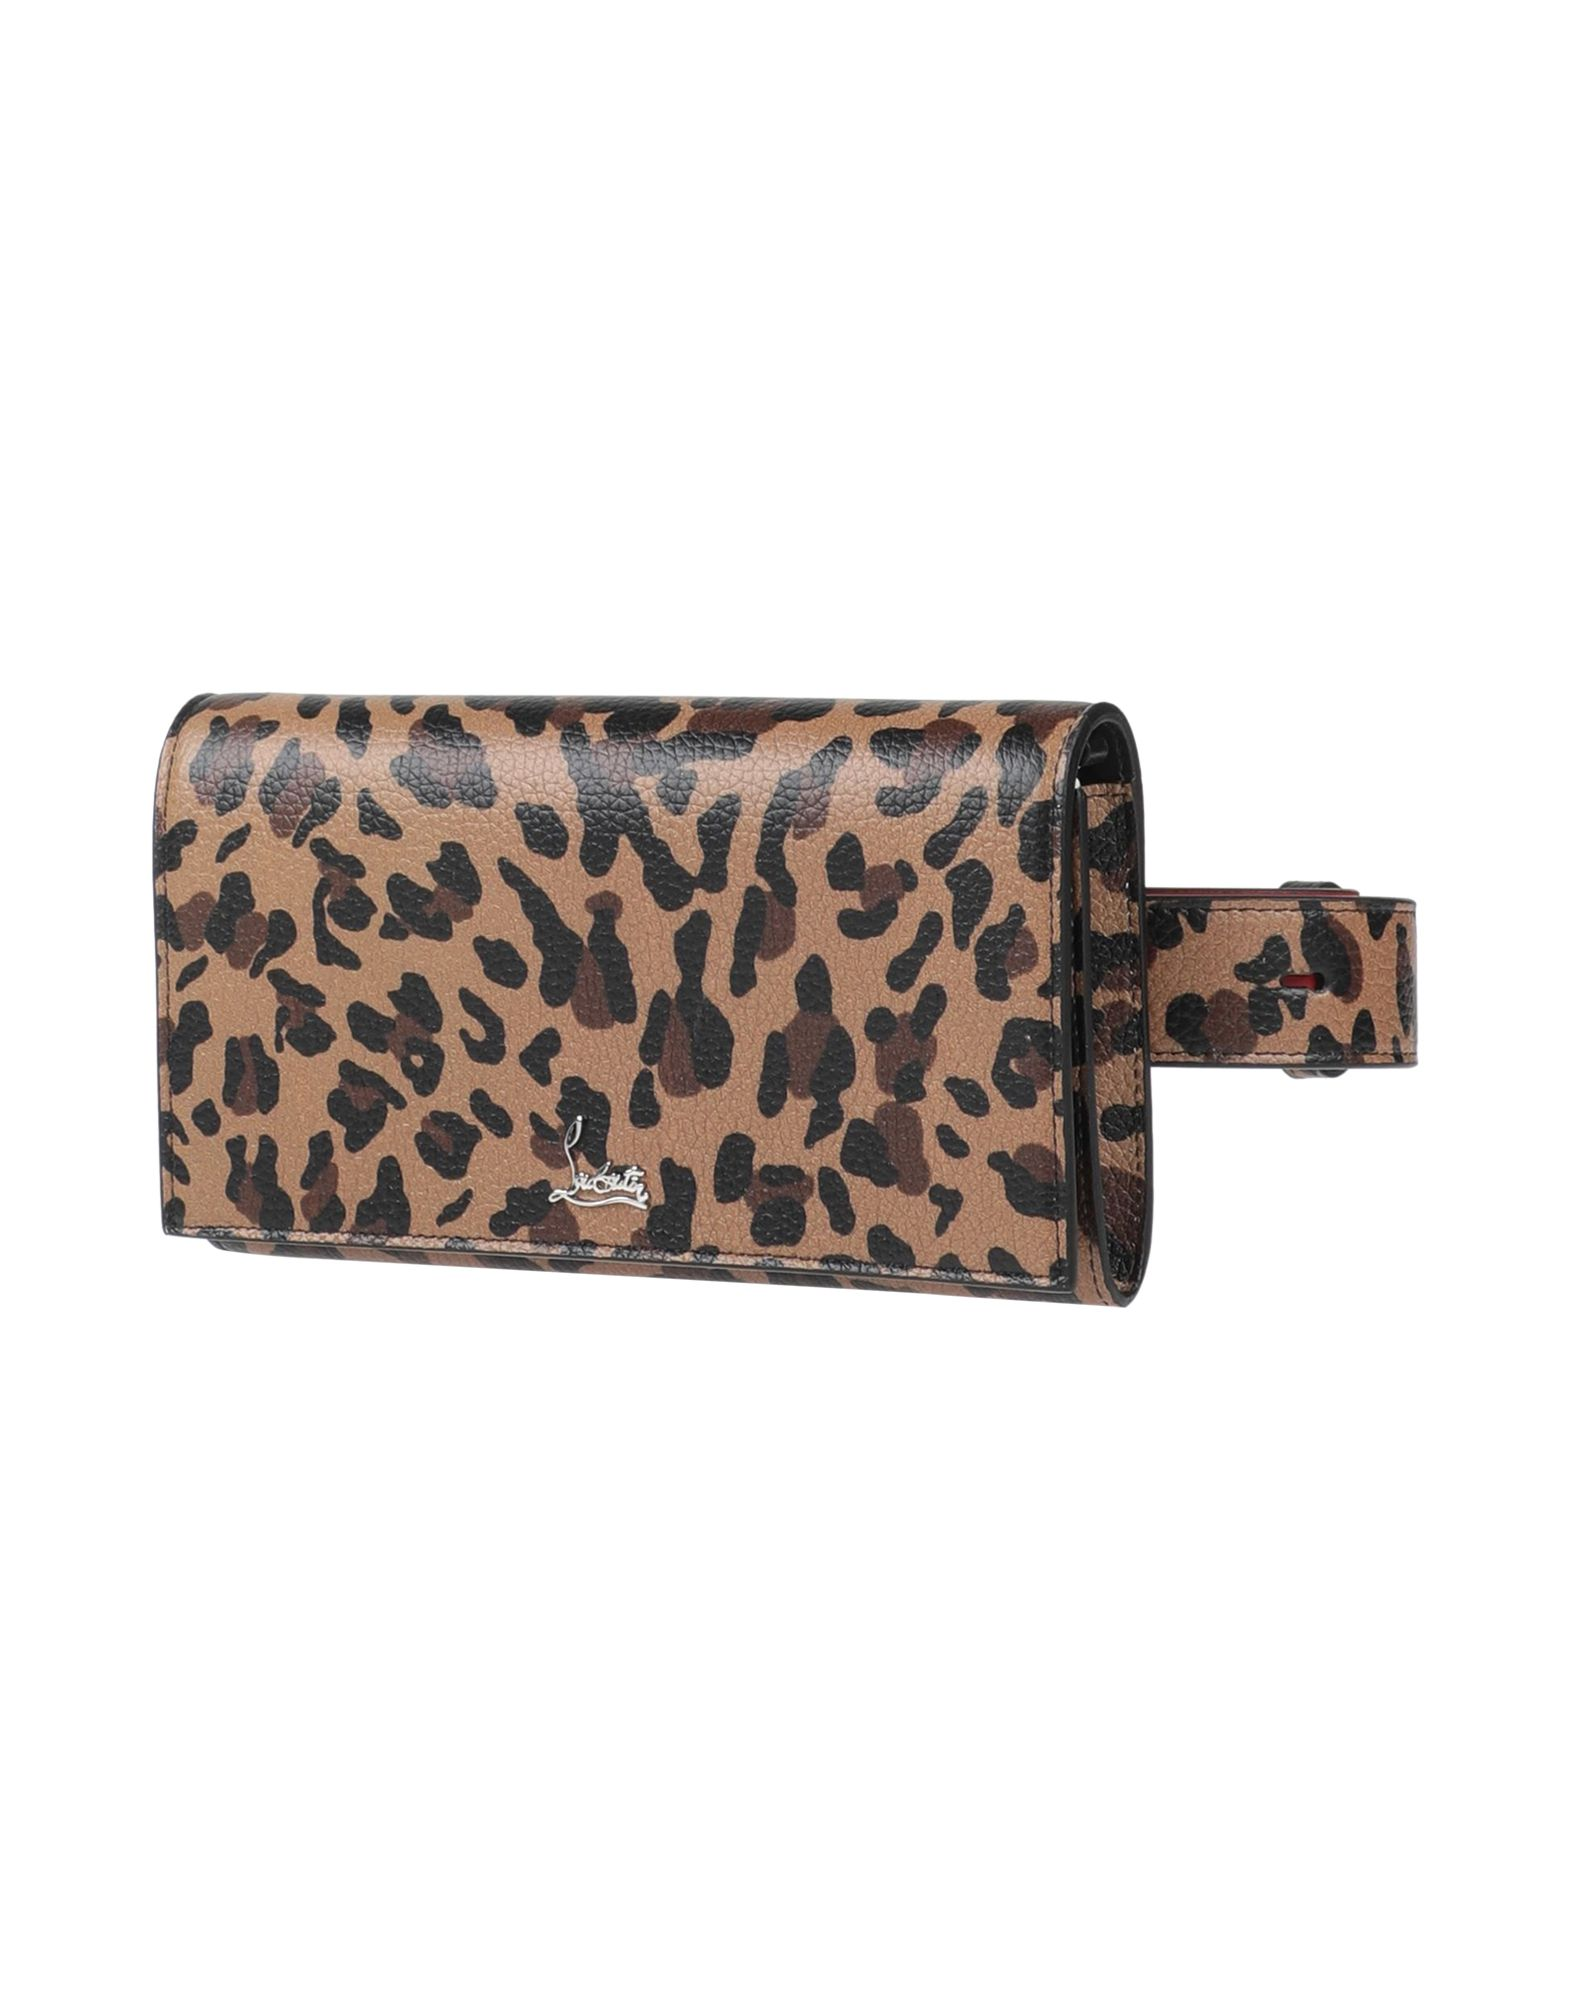 CHRISTIAN LOUBOUTIN Backpacks & Fanny packs. small, leather, logo, leopard-print, snap buttons fastening, removable shoulder strap, internal card slots, adjustable handle, contains non-textile parts of animal origin. Calfskin